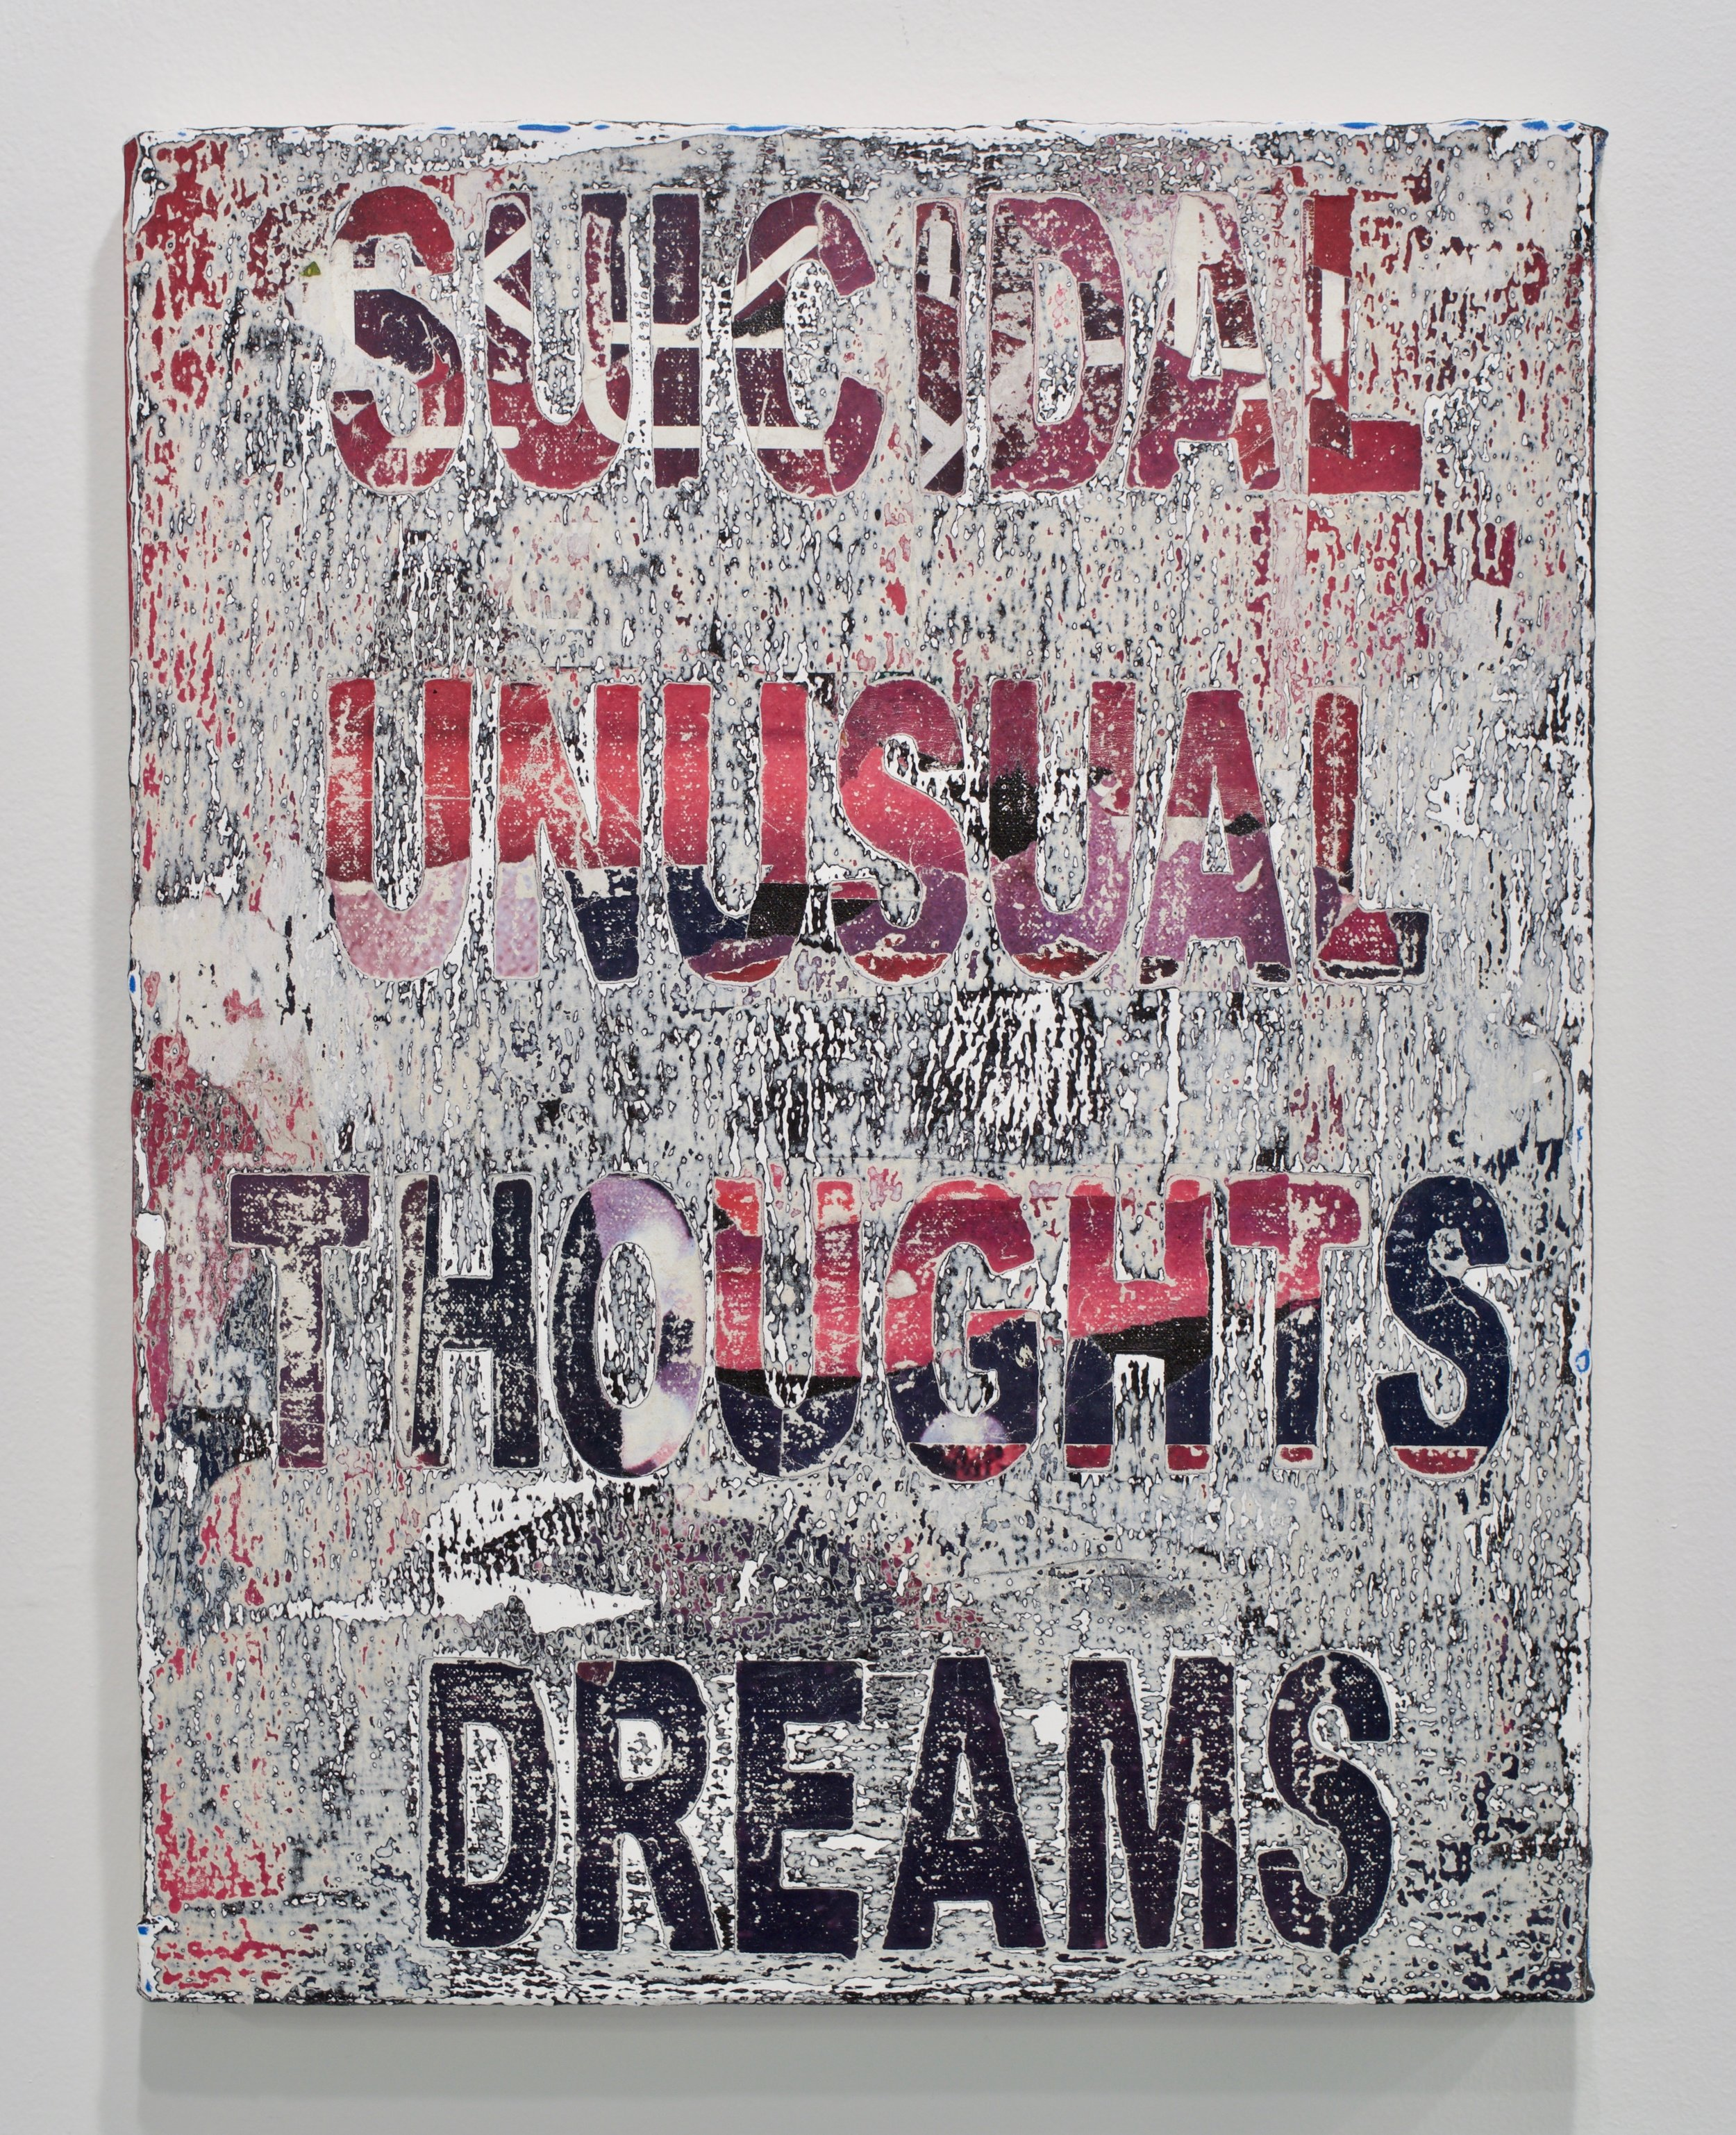 """Andrew Laumann, """"Symptoms (Suicidal Thoughts, Unusual Dreams)"""", 2017. Methylcellulose, acrylic, paper on canvas mounted to wood panel, 18x14 in."""